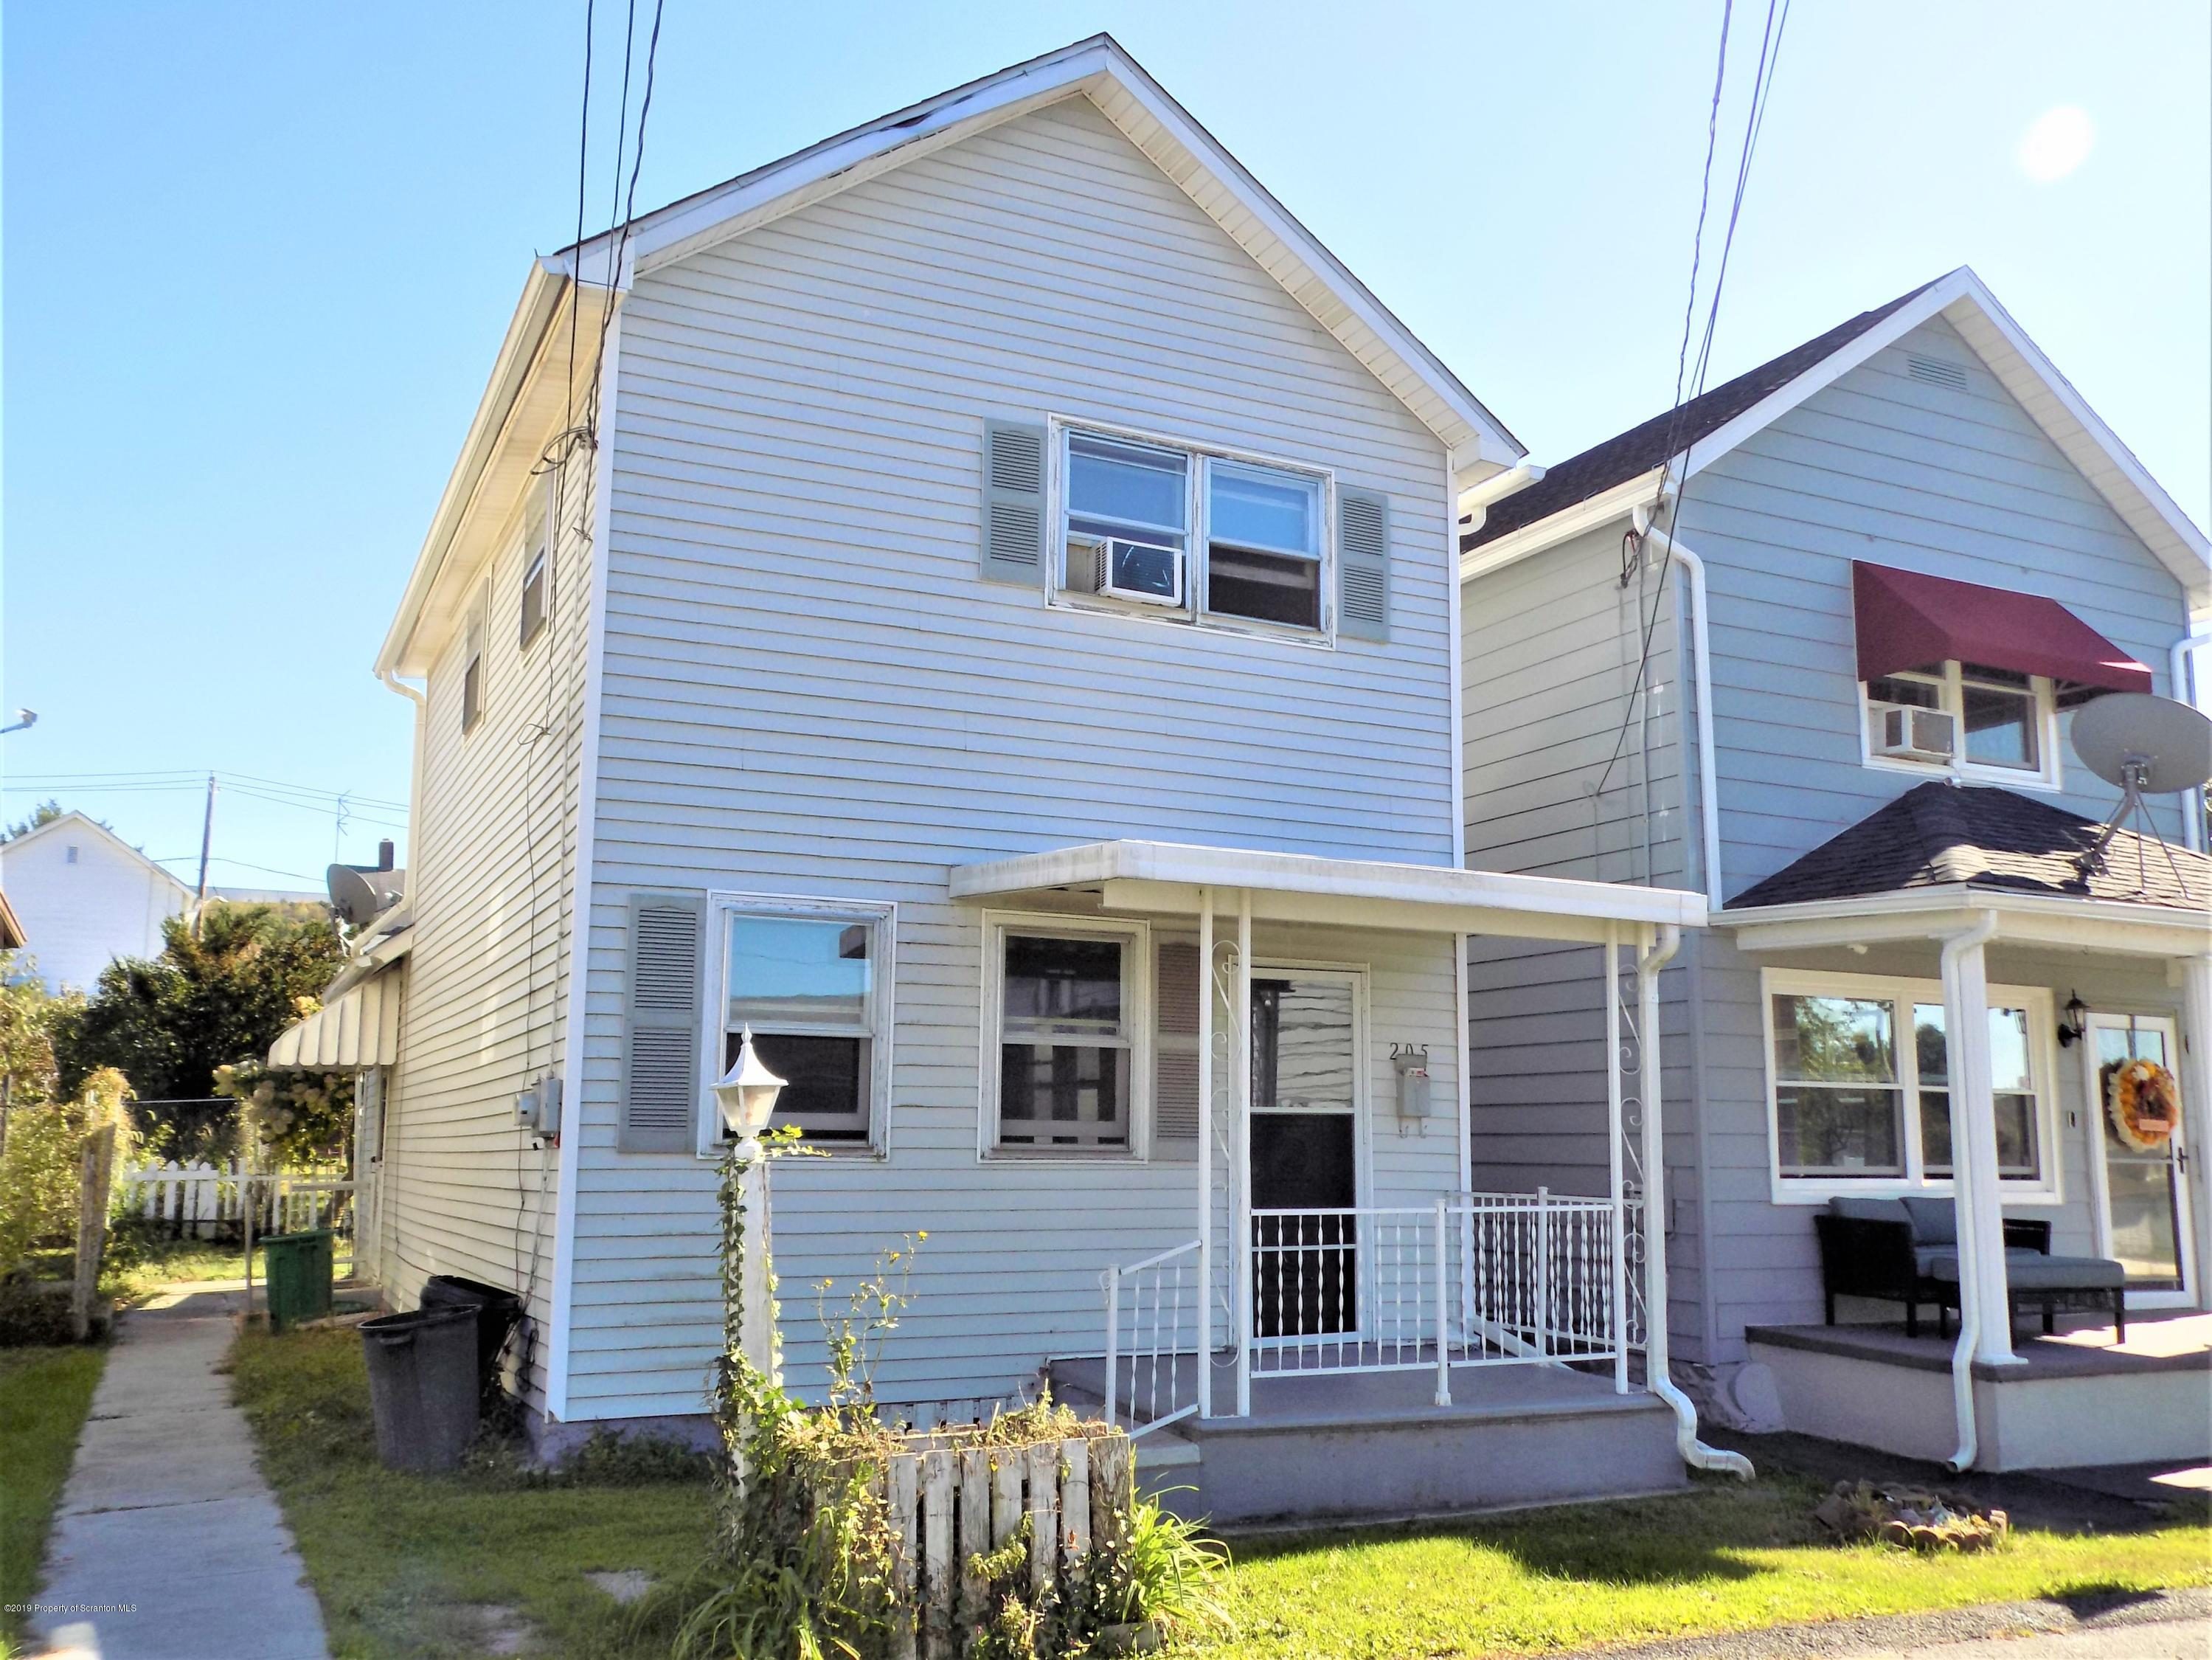 205 Short St, Jessup, Pennsylvania 18434, 2 Bedrooms Bedrooms, 5 Rooms Rooms,1 BathroomBathrooms,Rental,For Lease,Short,19-4816